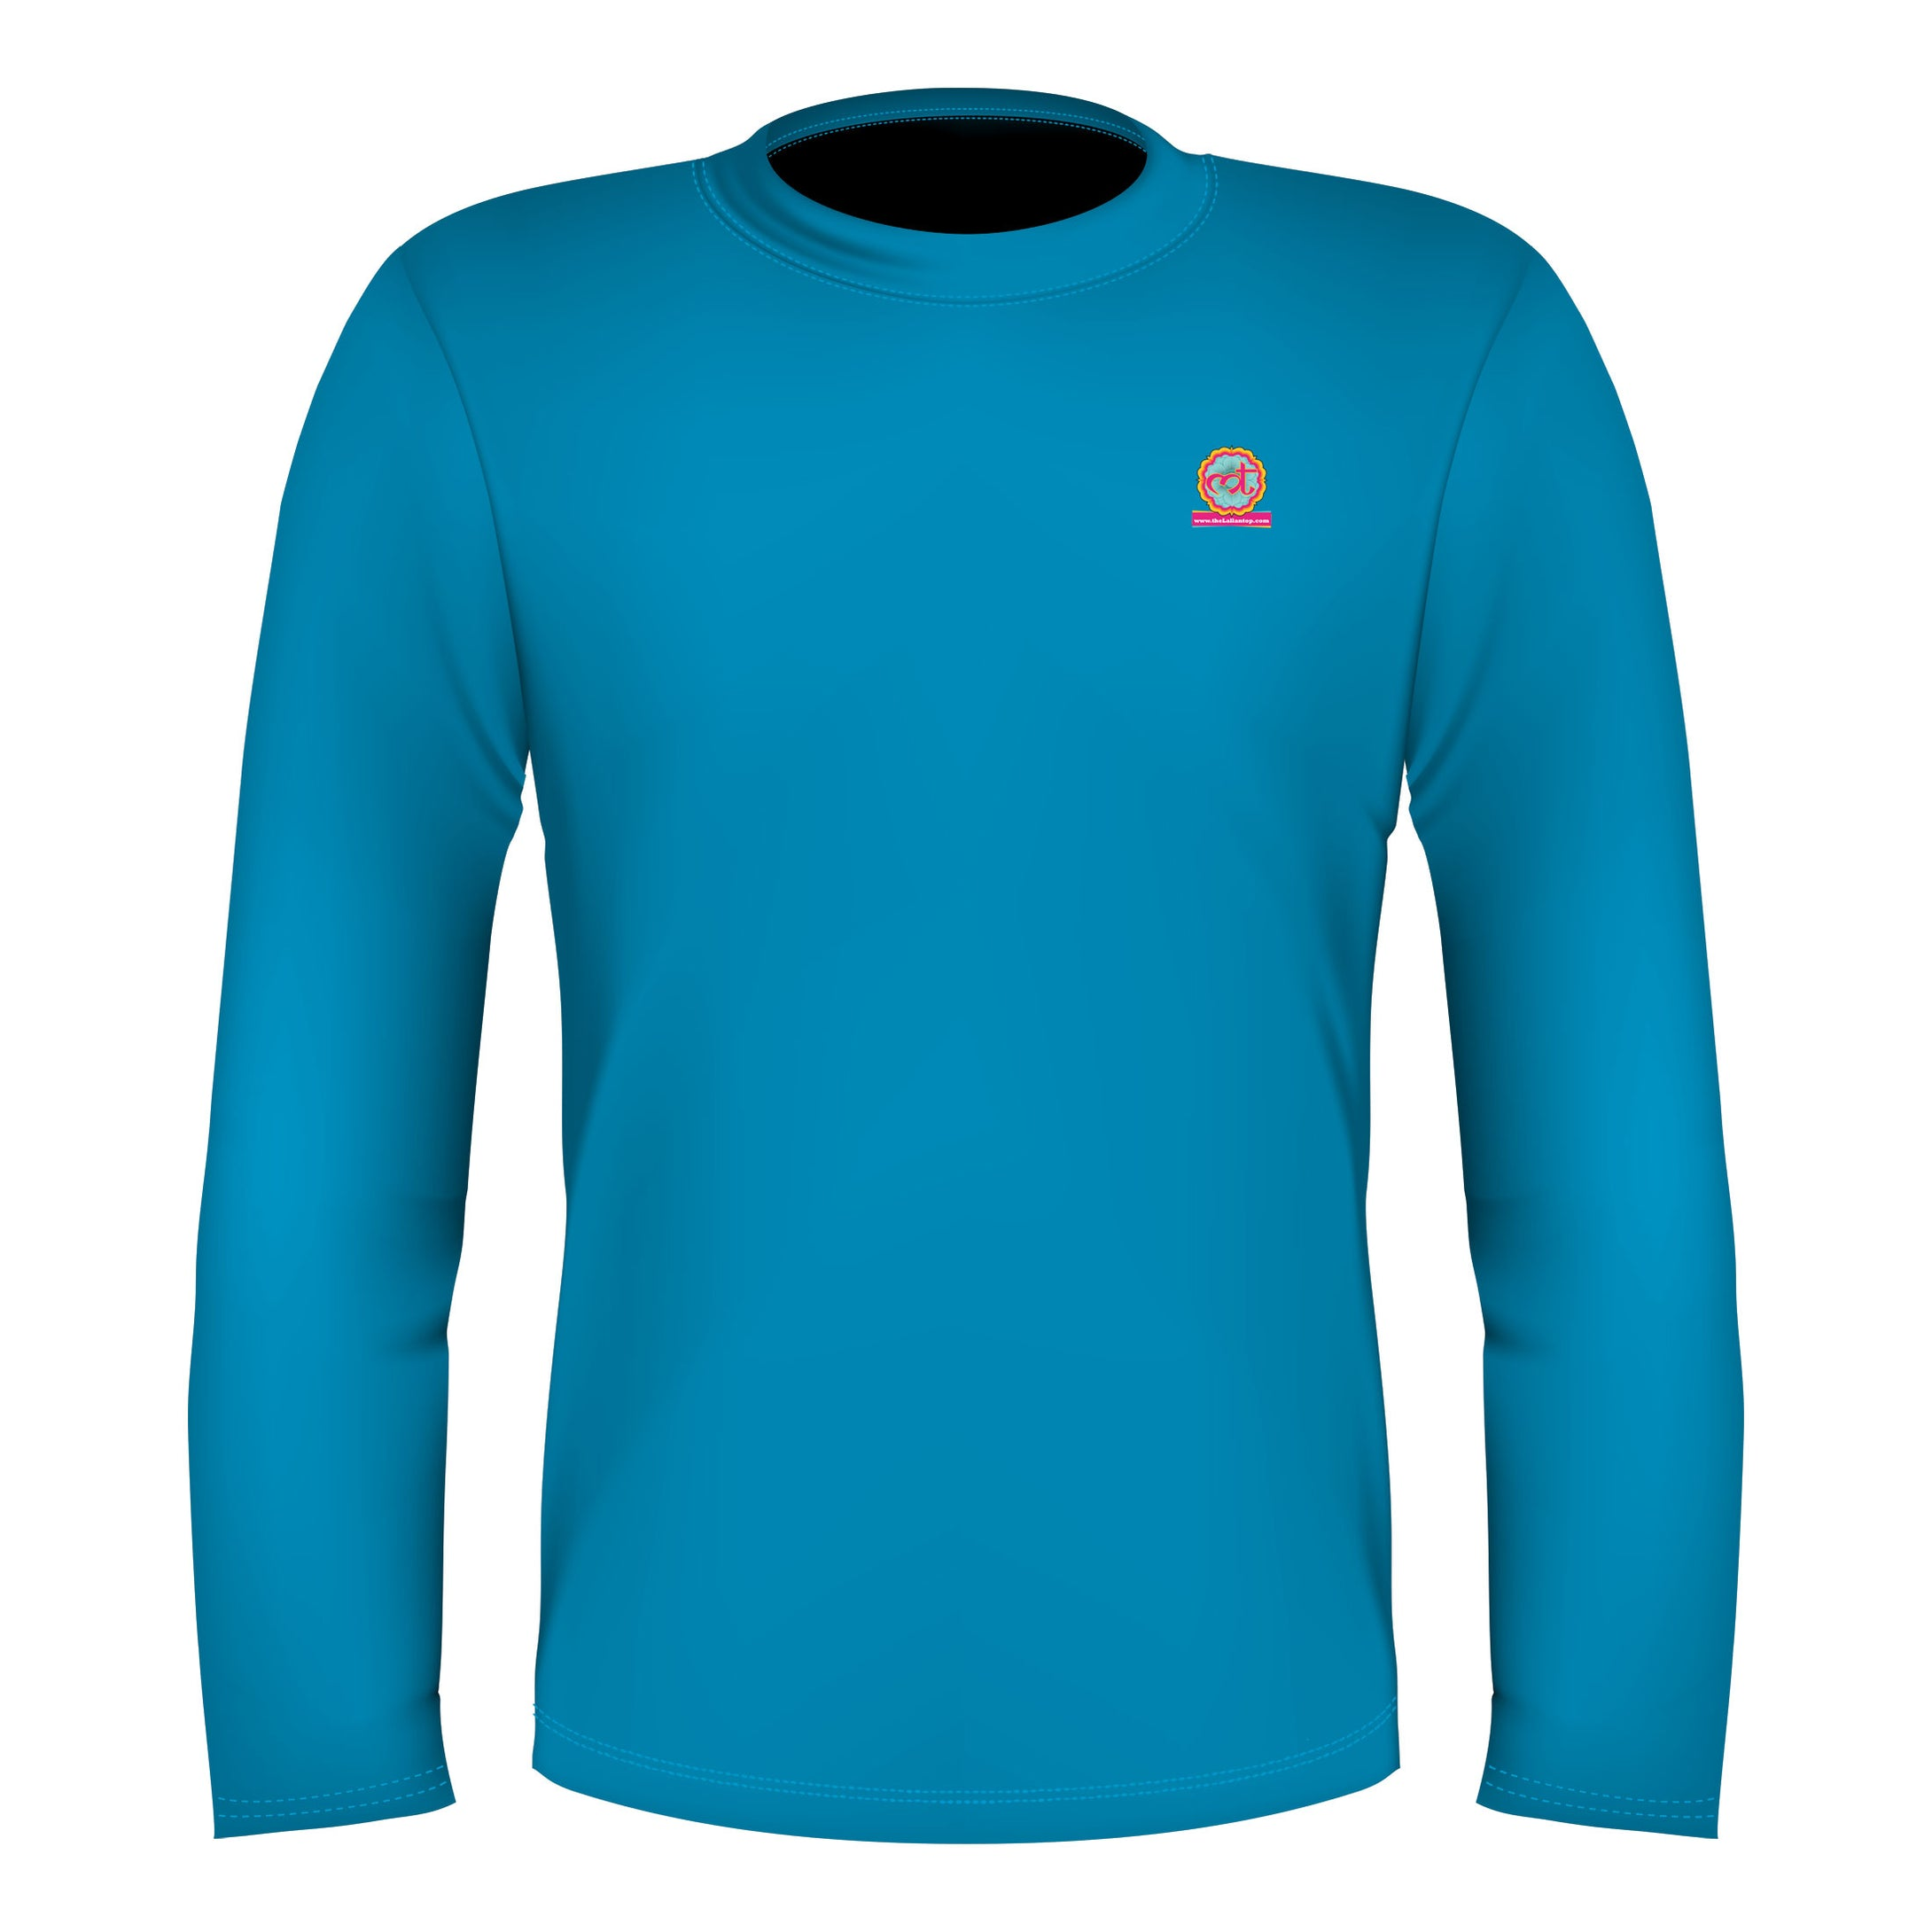 Full Sleeves T Shirt Sky Blue